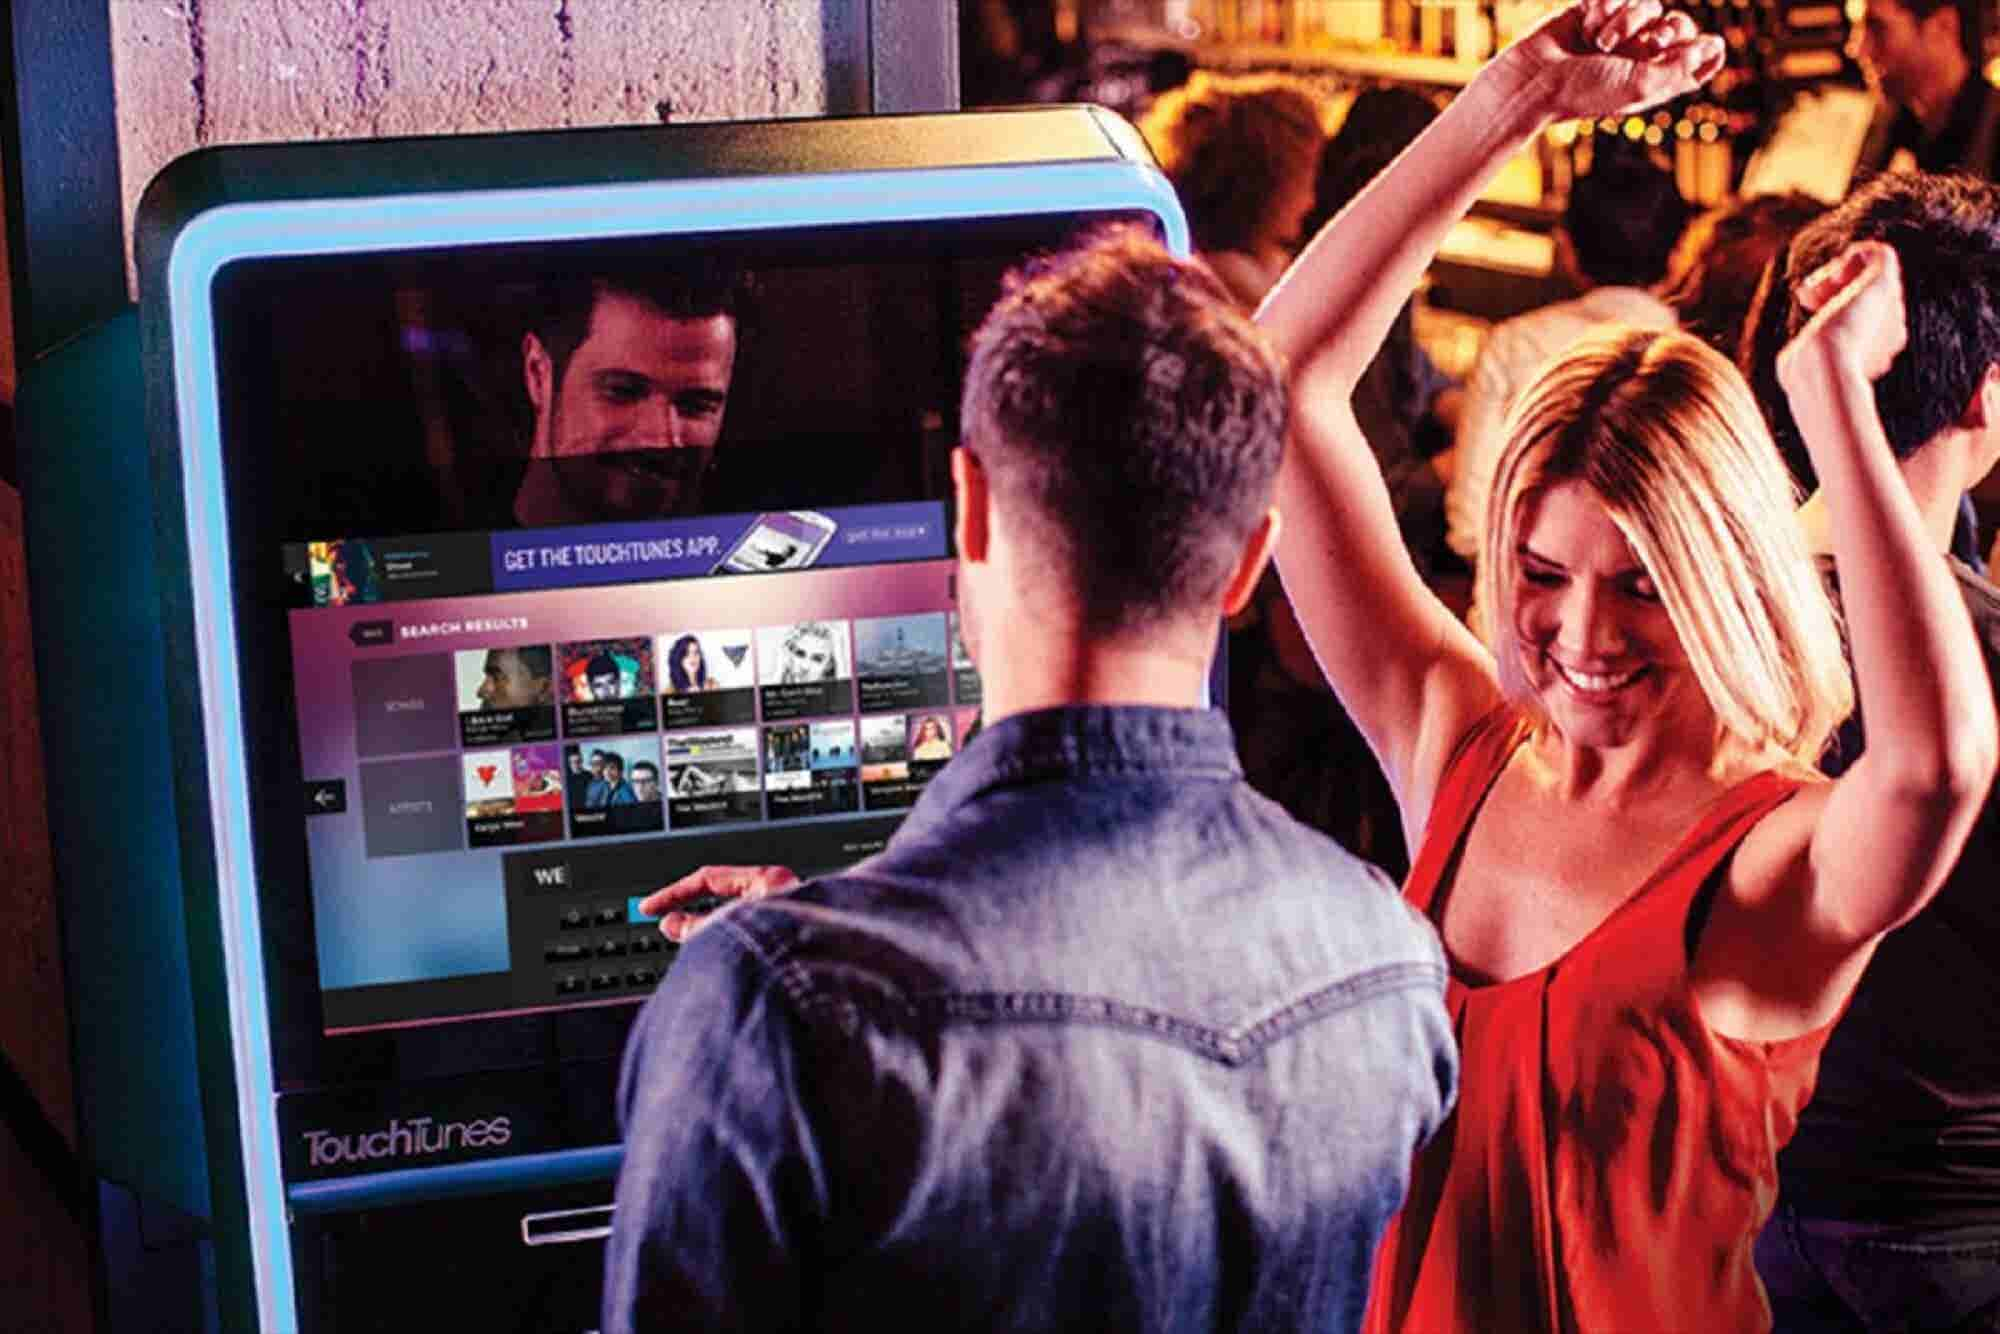 How Foursquare Became a Jukebox Hero by Helping This Company Target Bar-Goers